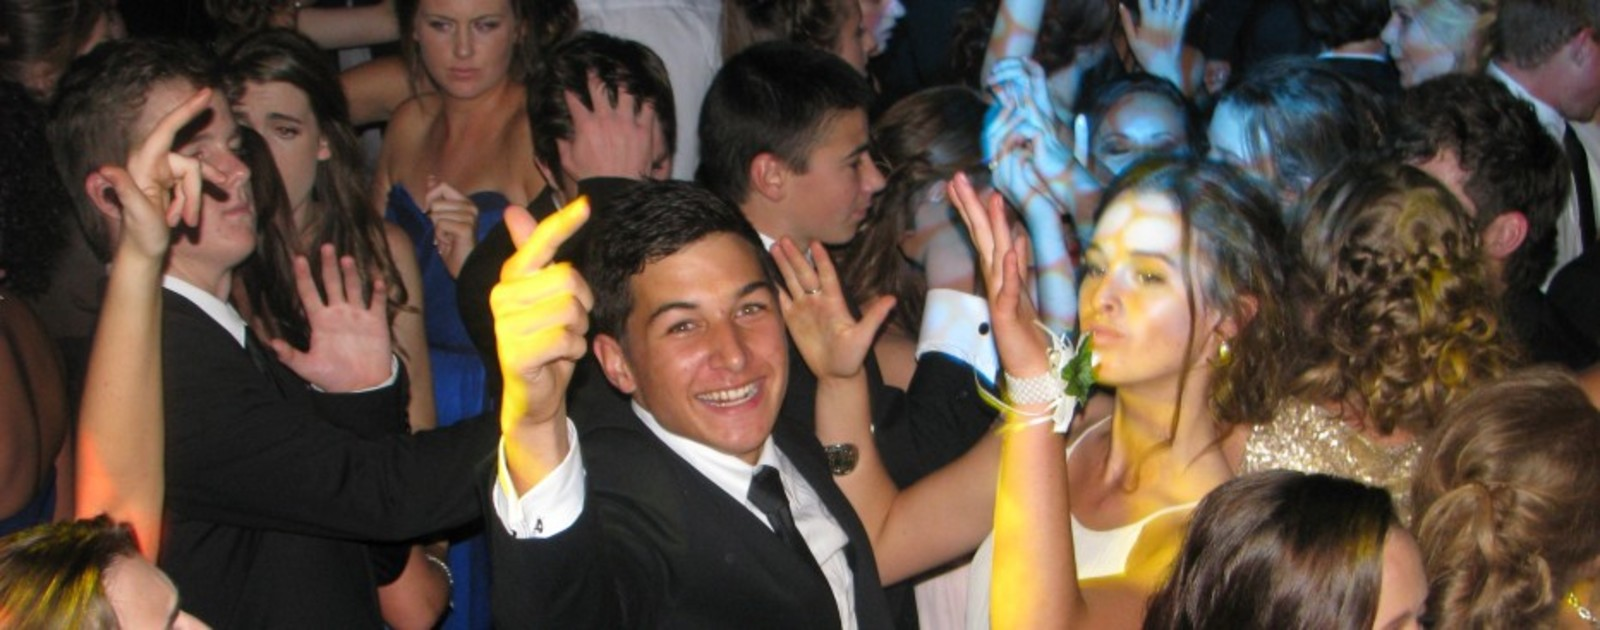 Auckland dj hire for school ball dj hire big or small.jpg